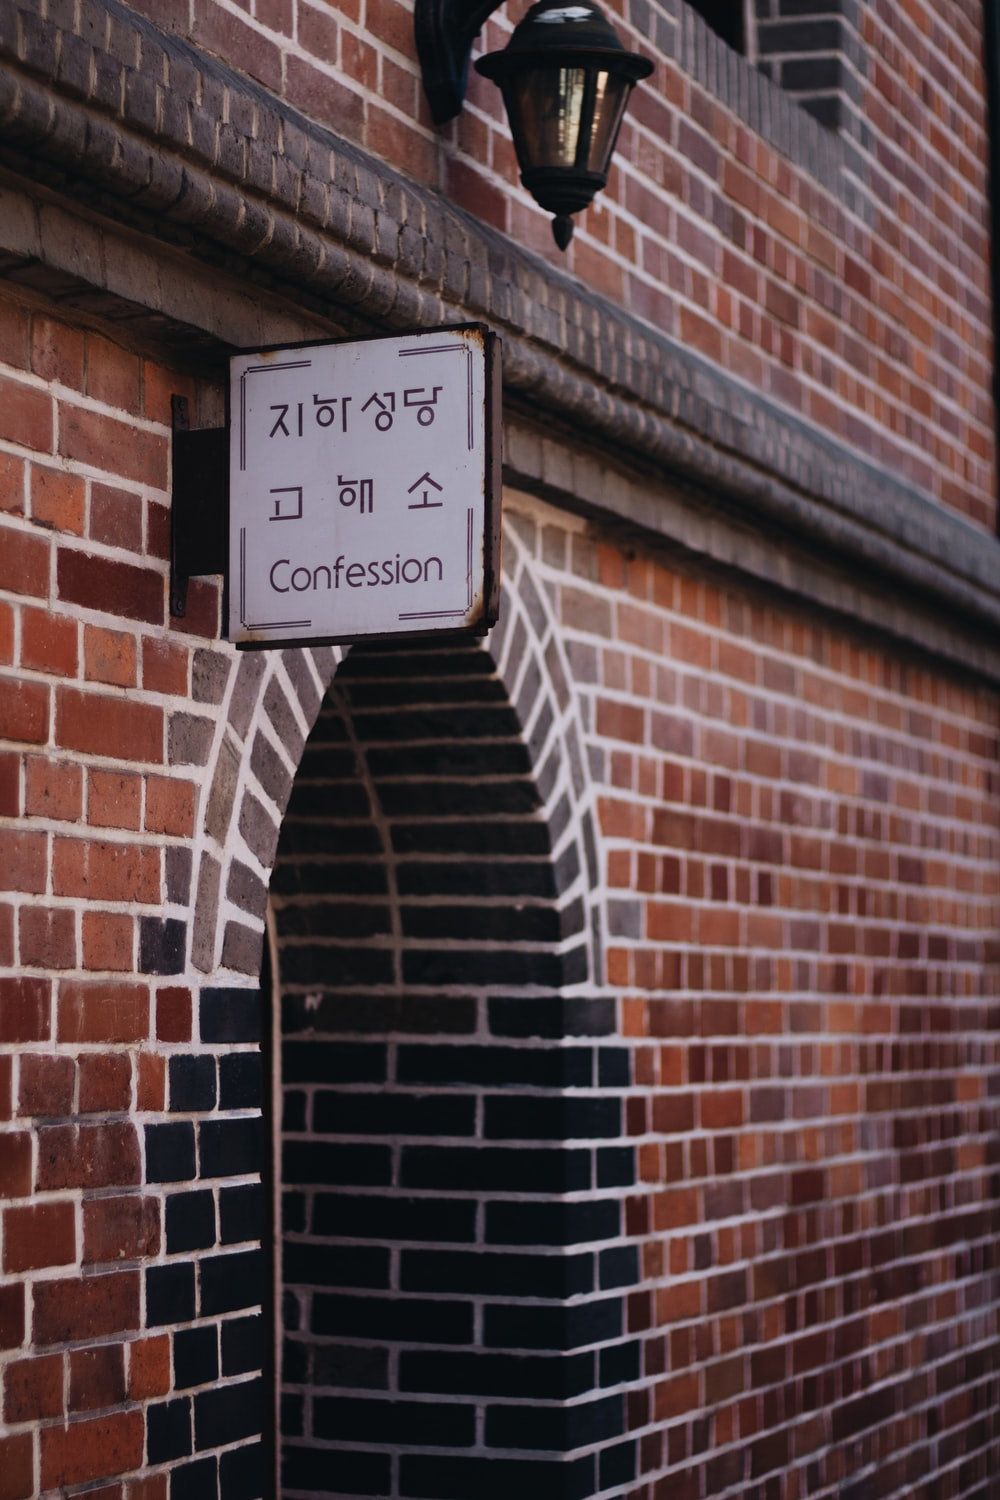 Confession signage beside brown concrete wall